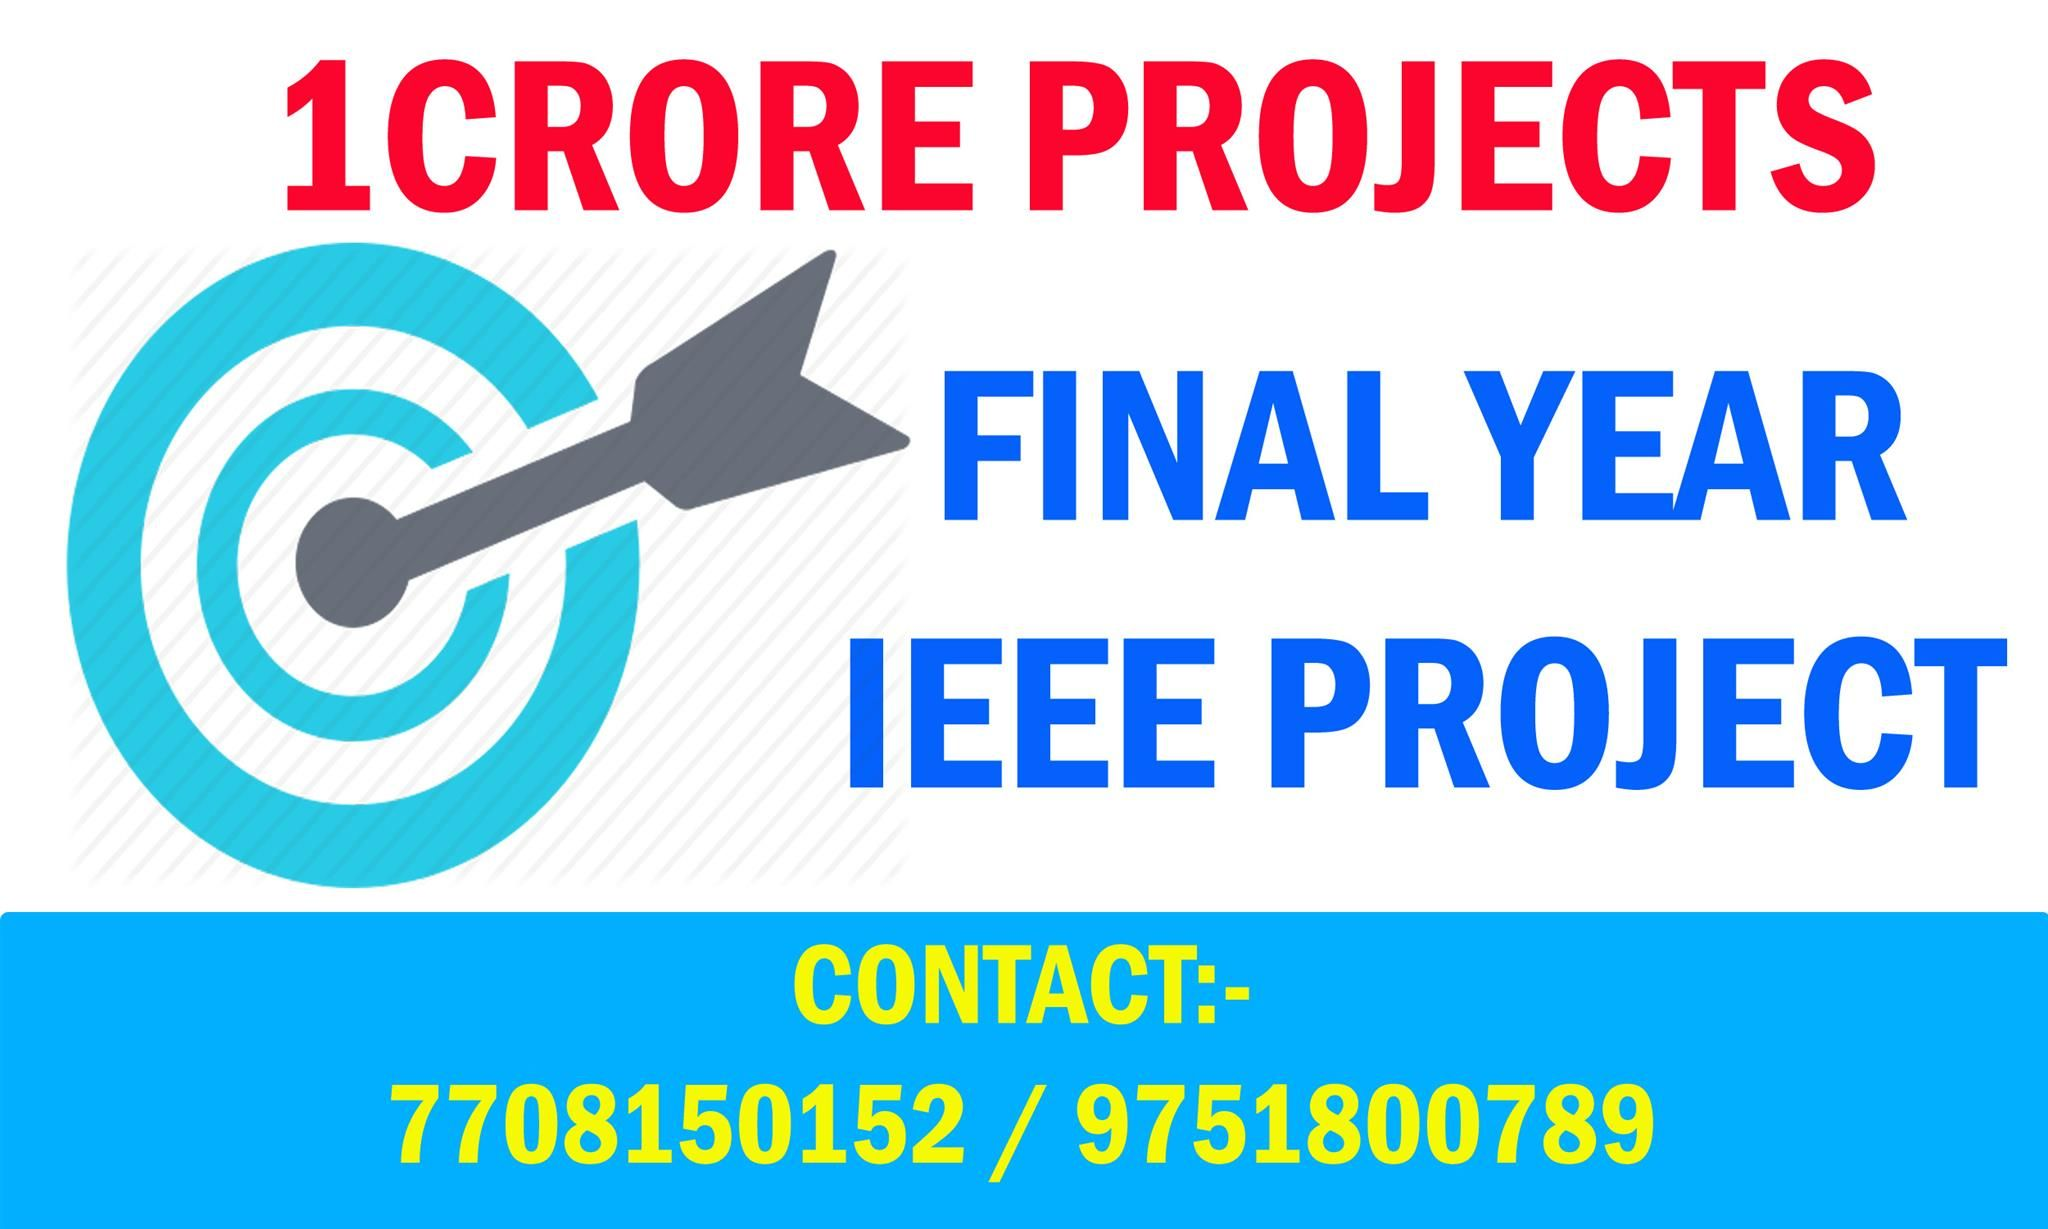 1Crore Project is the best MTech project centers in Chennai  It also